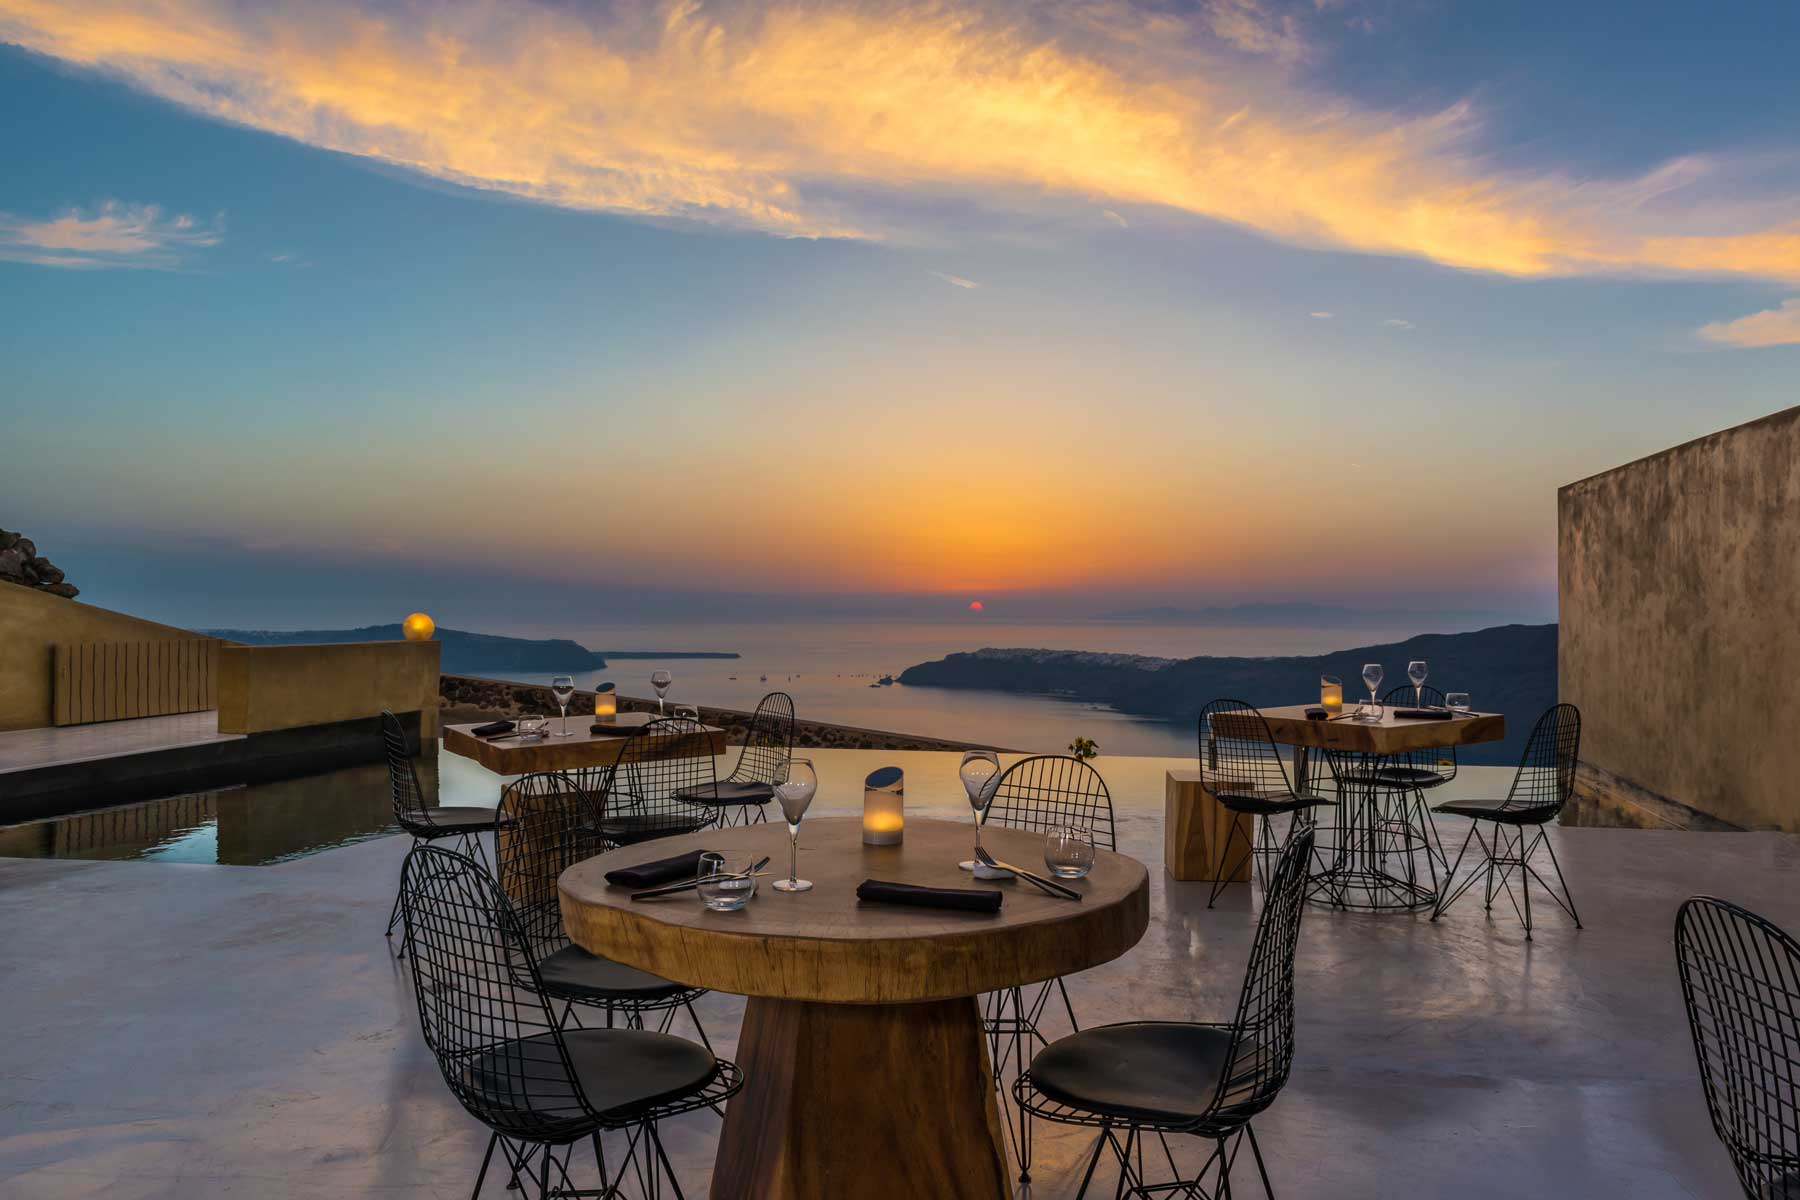 Outdoor dining at Andronis Concept Wellness Resort in Santorini with a stunning sunset view